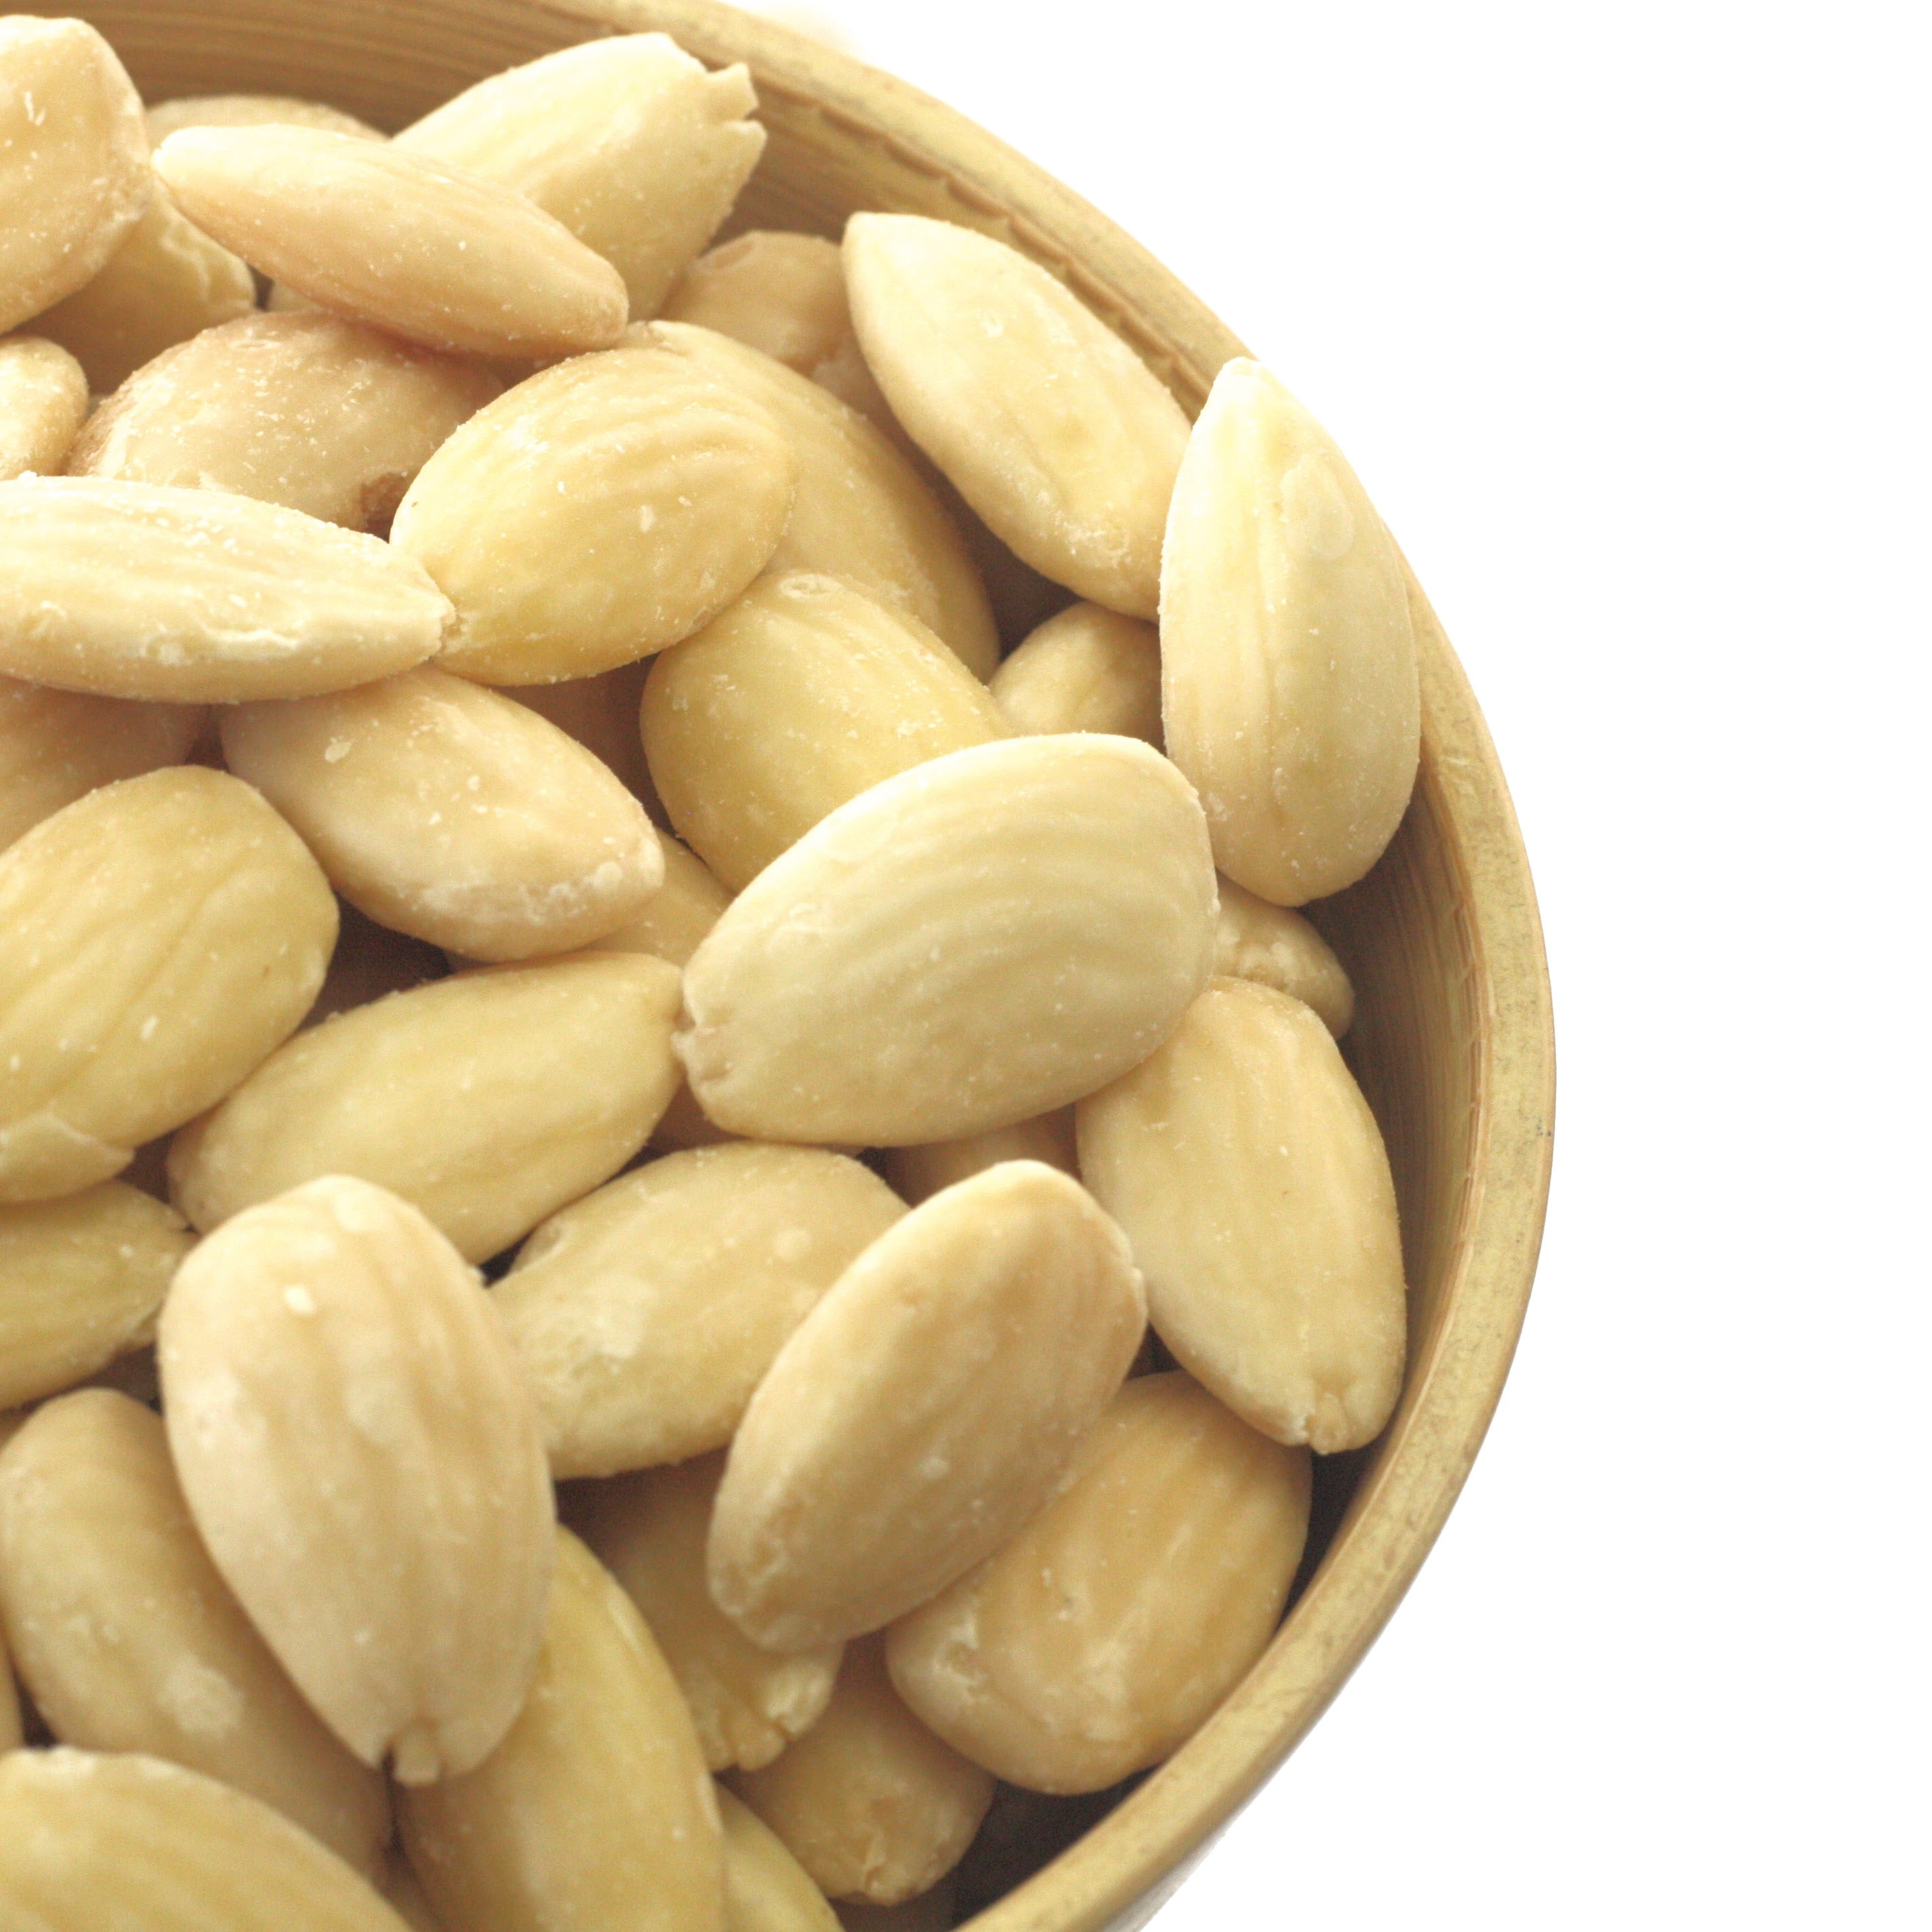 Whole Blanched Almonds